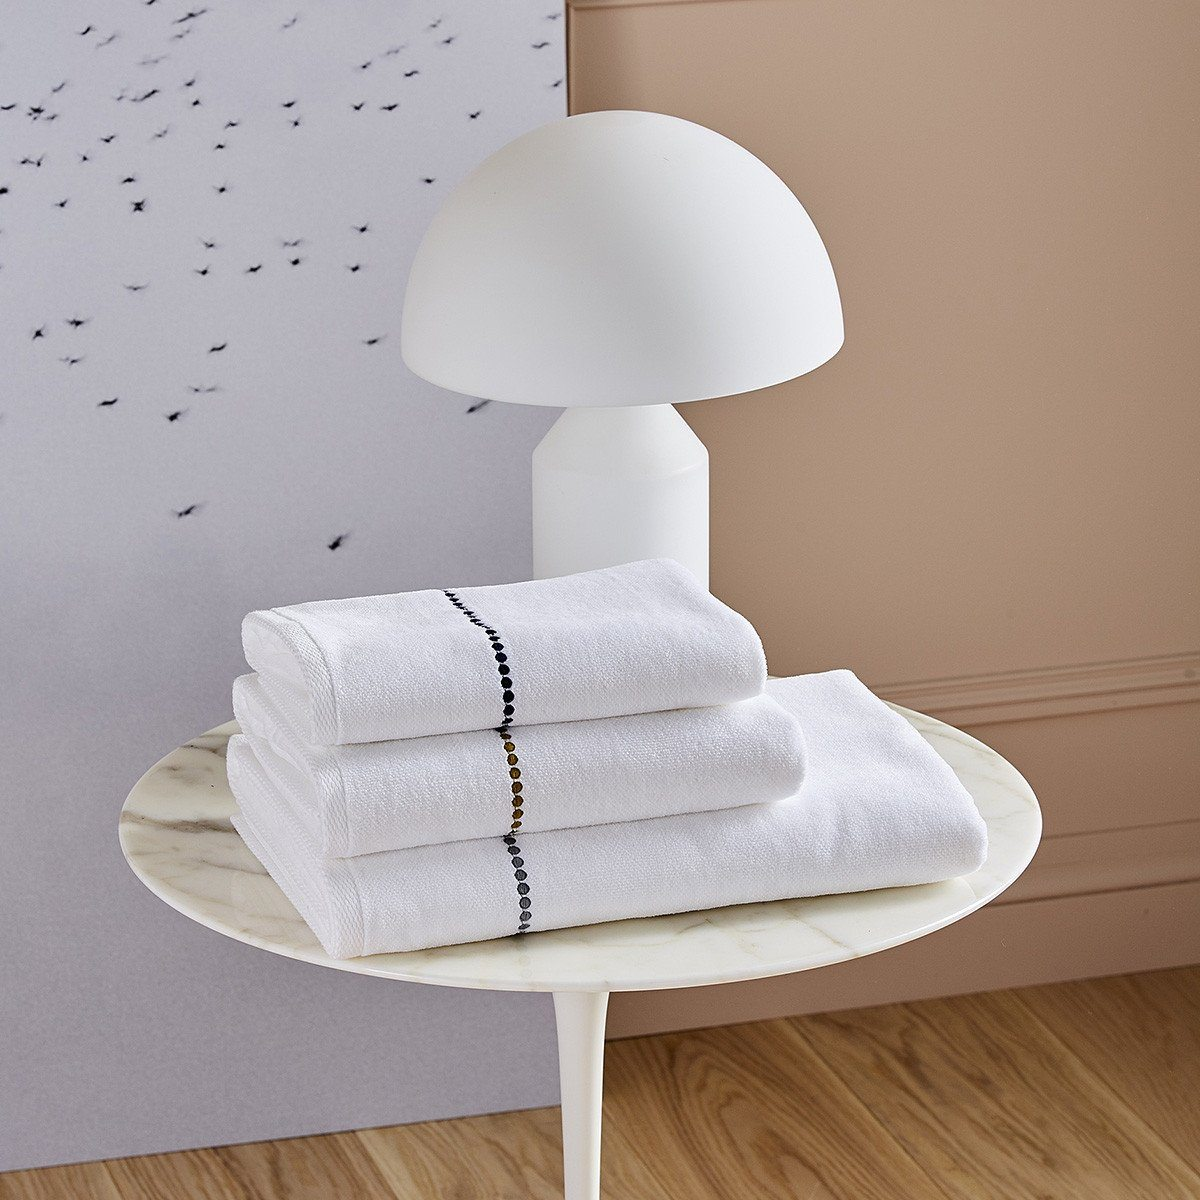 Fig Linens - Victoire Bath Towels by Yves Delorme